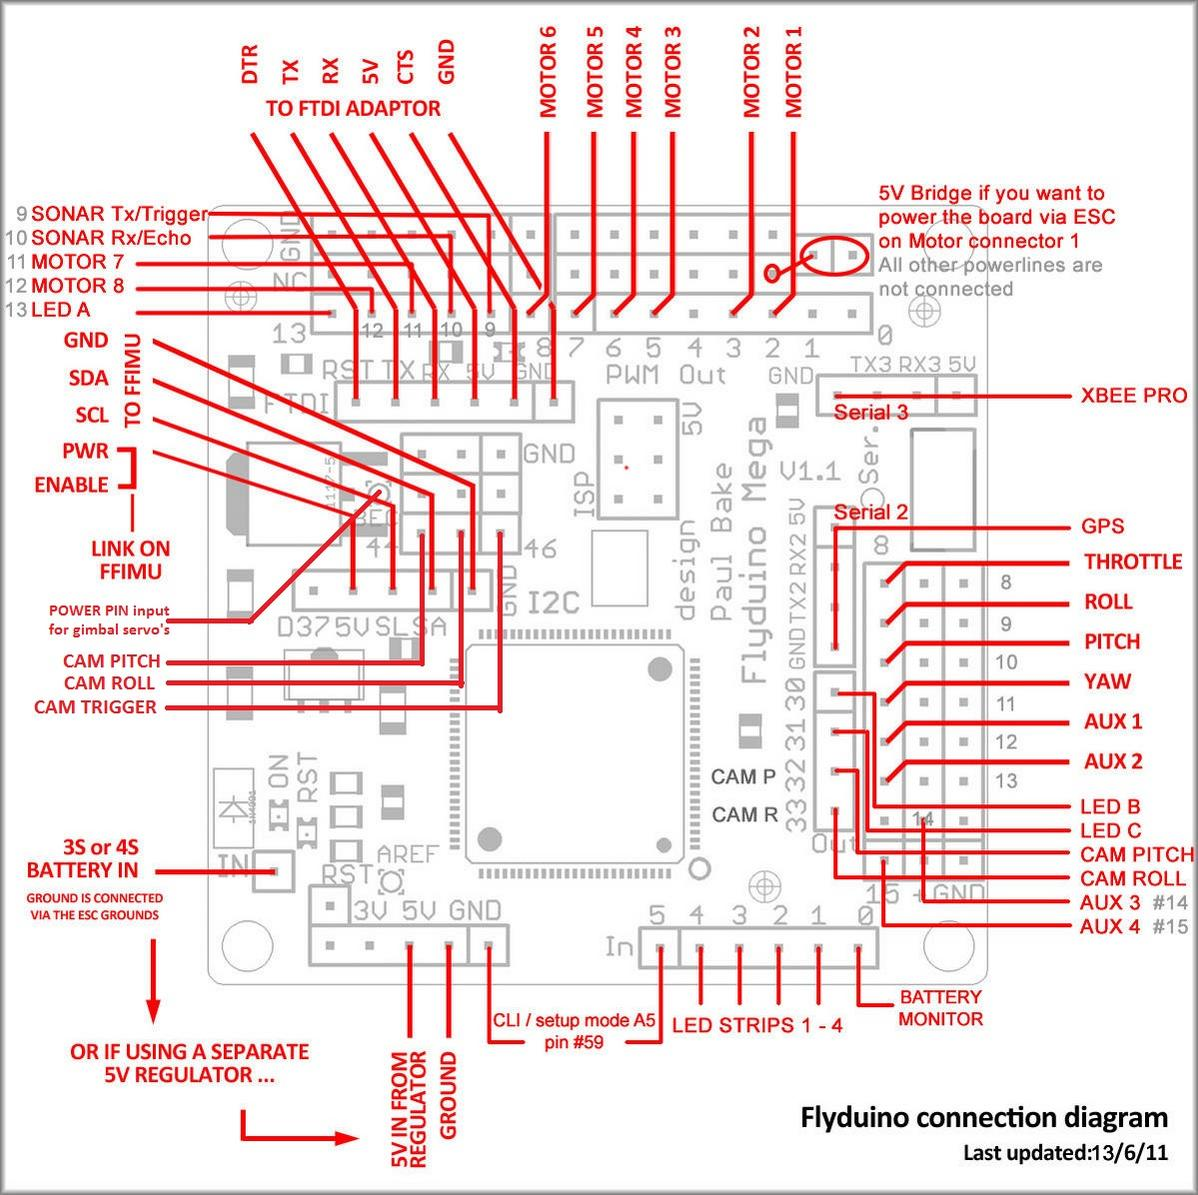 Rc Led Controller Wiring Diagram 32 Images Receiver A4341830 143 Final Flyduino Pinout 13 06 11 Odicis